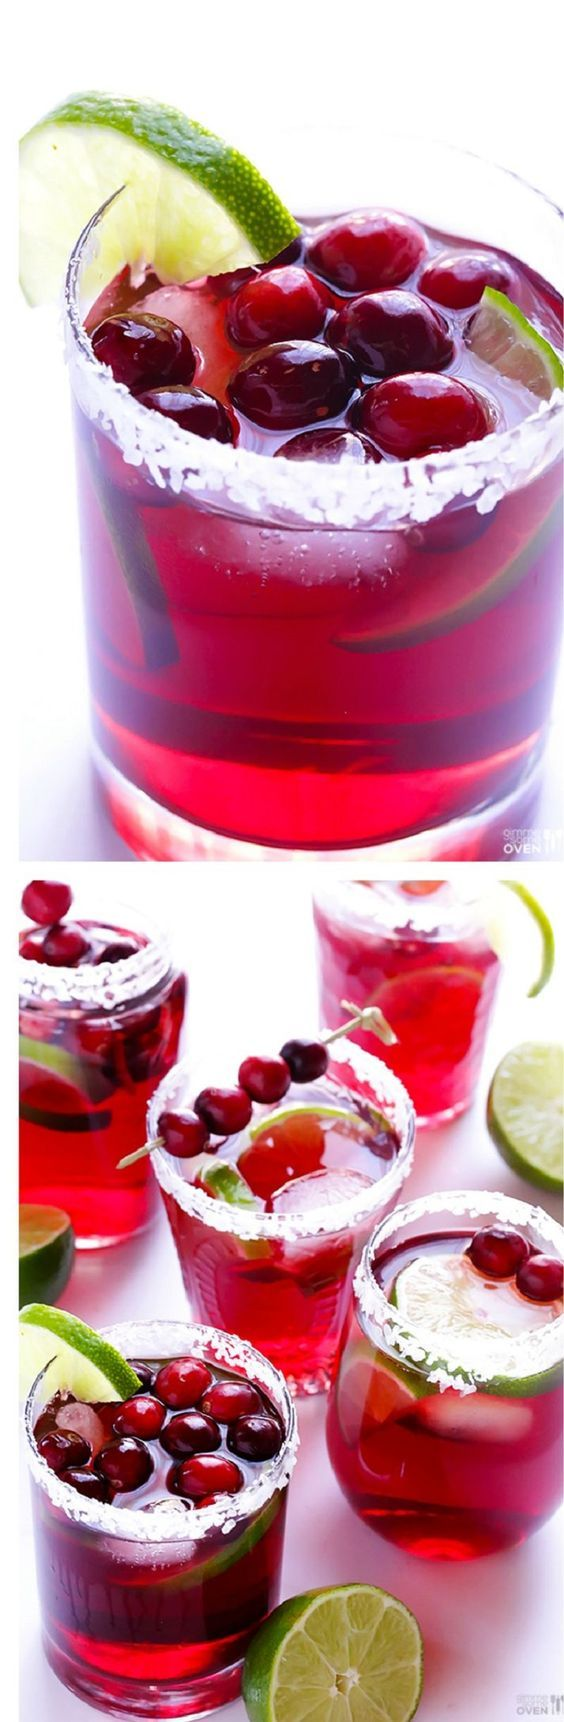 Cranberry margaritas in just 5 minutes – cranberry juice cocktail, fresh lime juice, tequila, orange-flavored liqueur (Cointreau or Triple Sec)